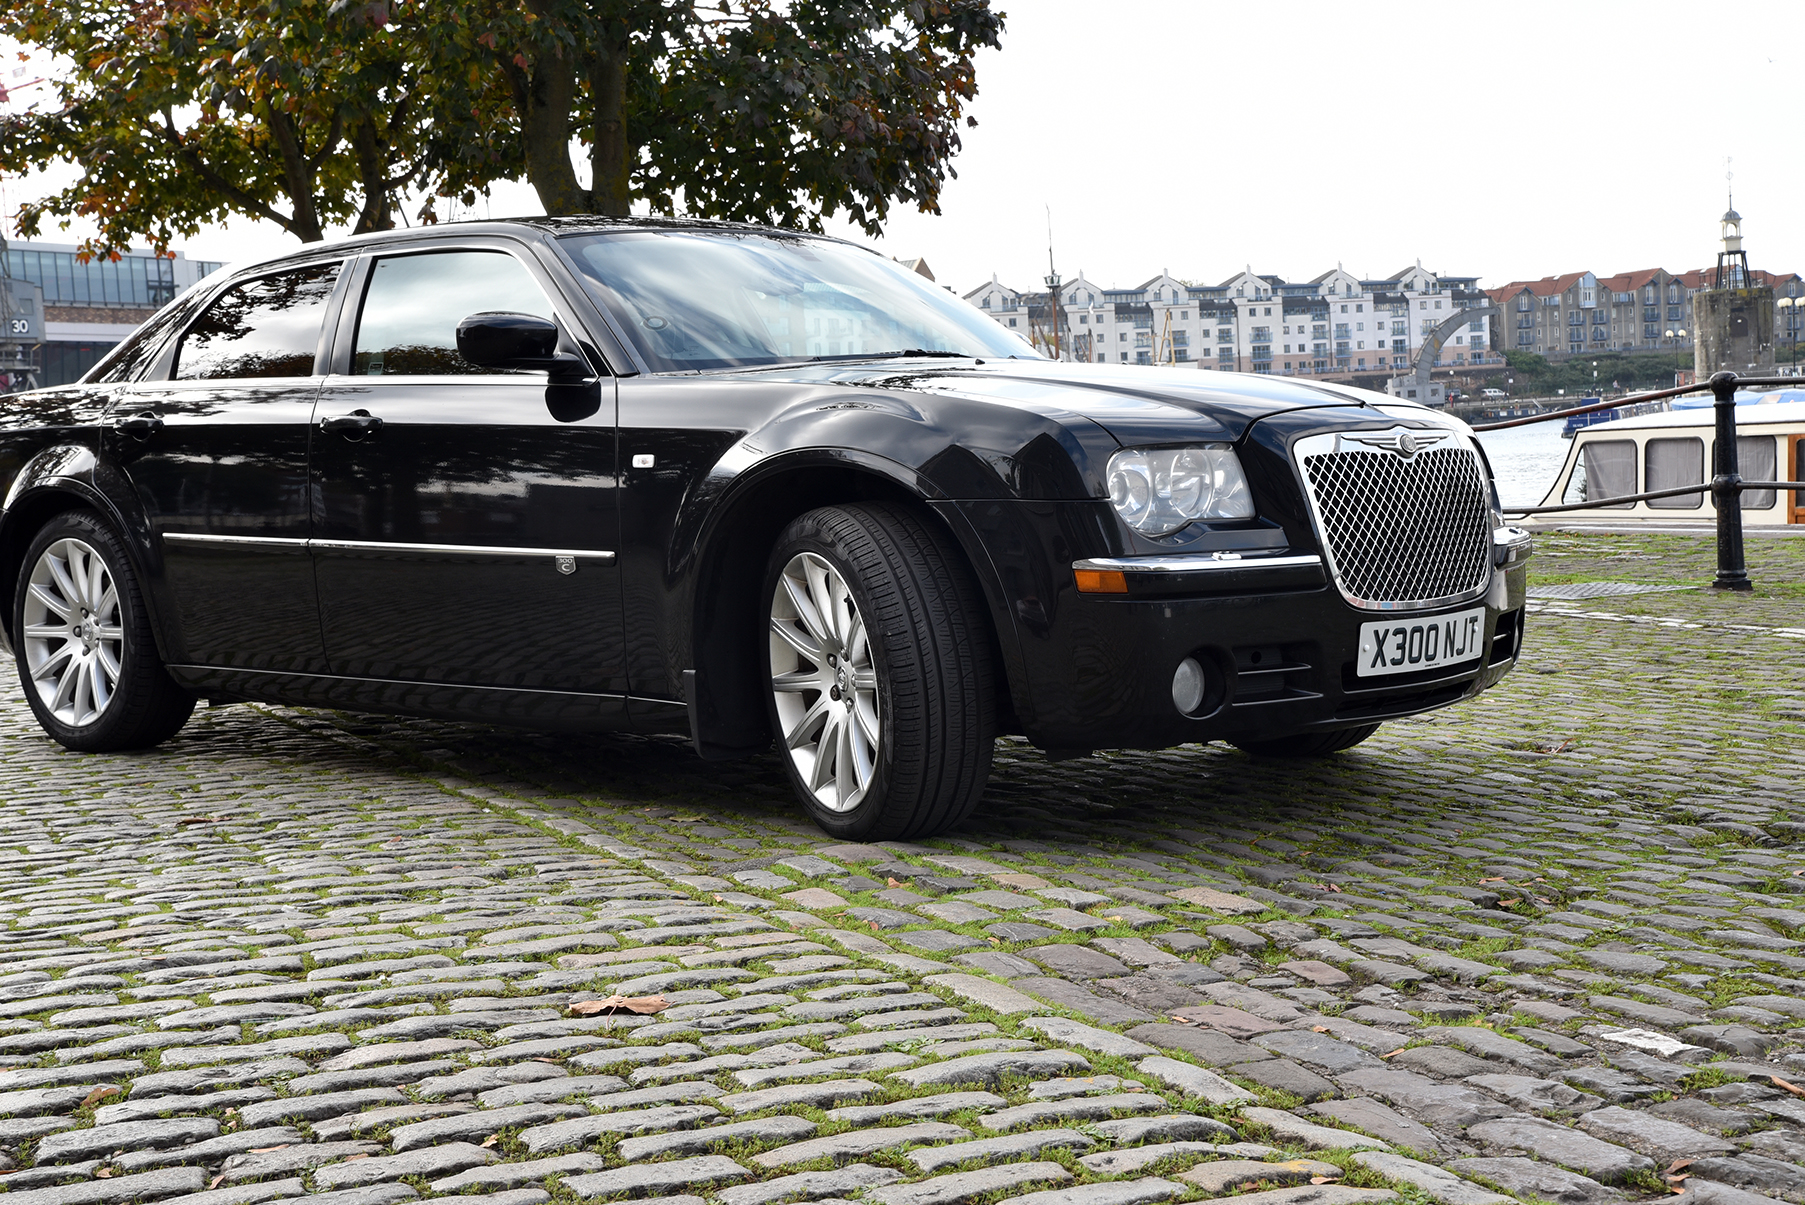 image of a wedding car reflected in the wingmirror of a luxury car to illustrate proffessional chauffeur services in south west UK